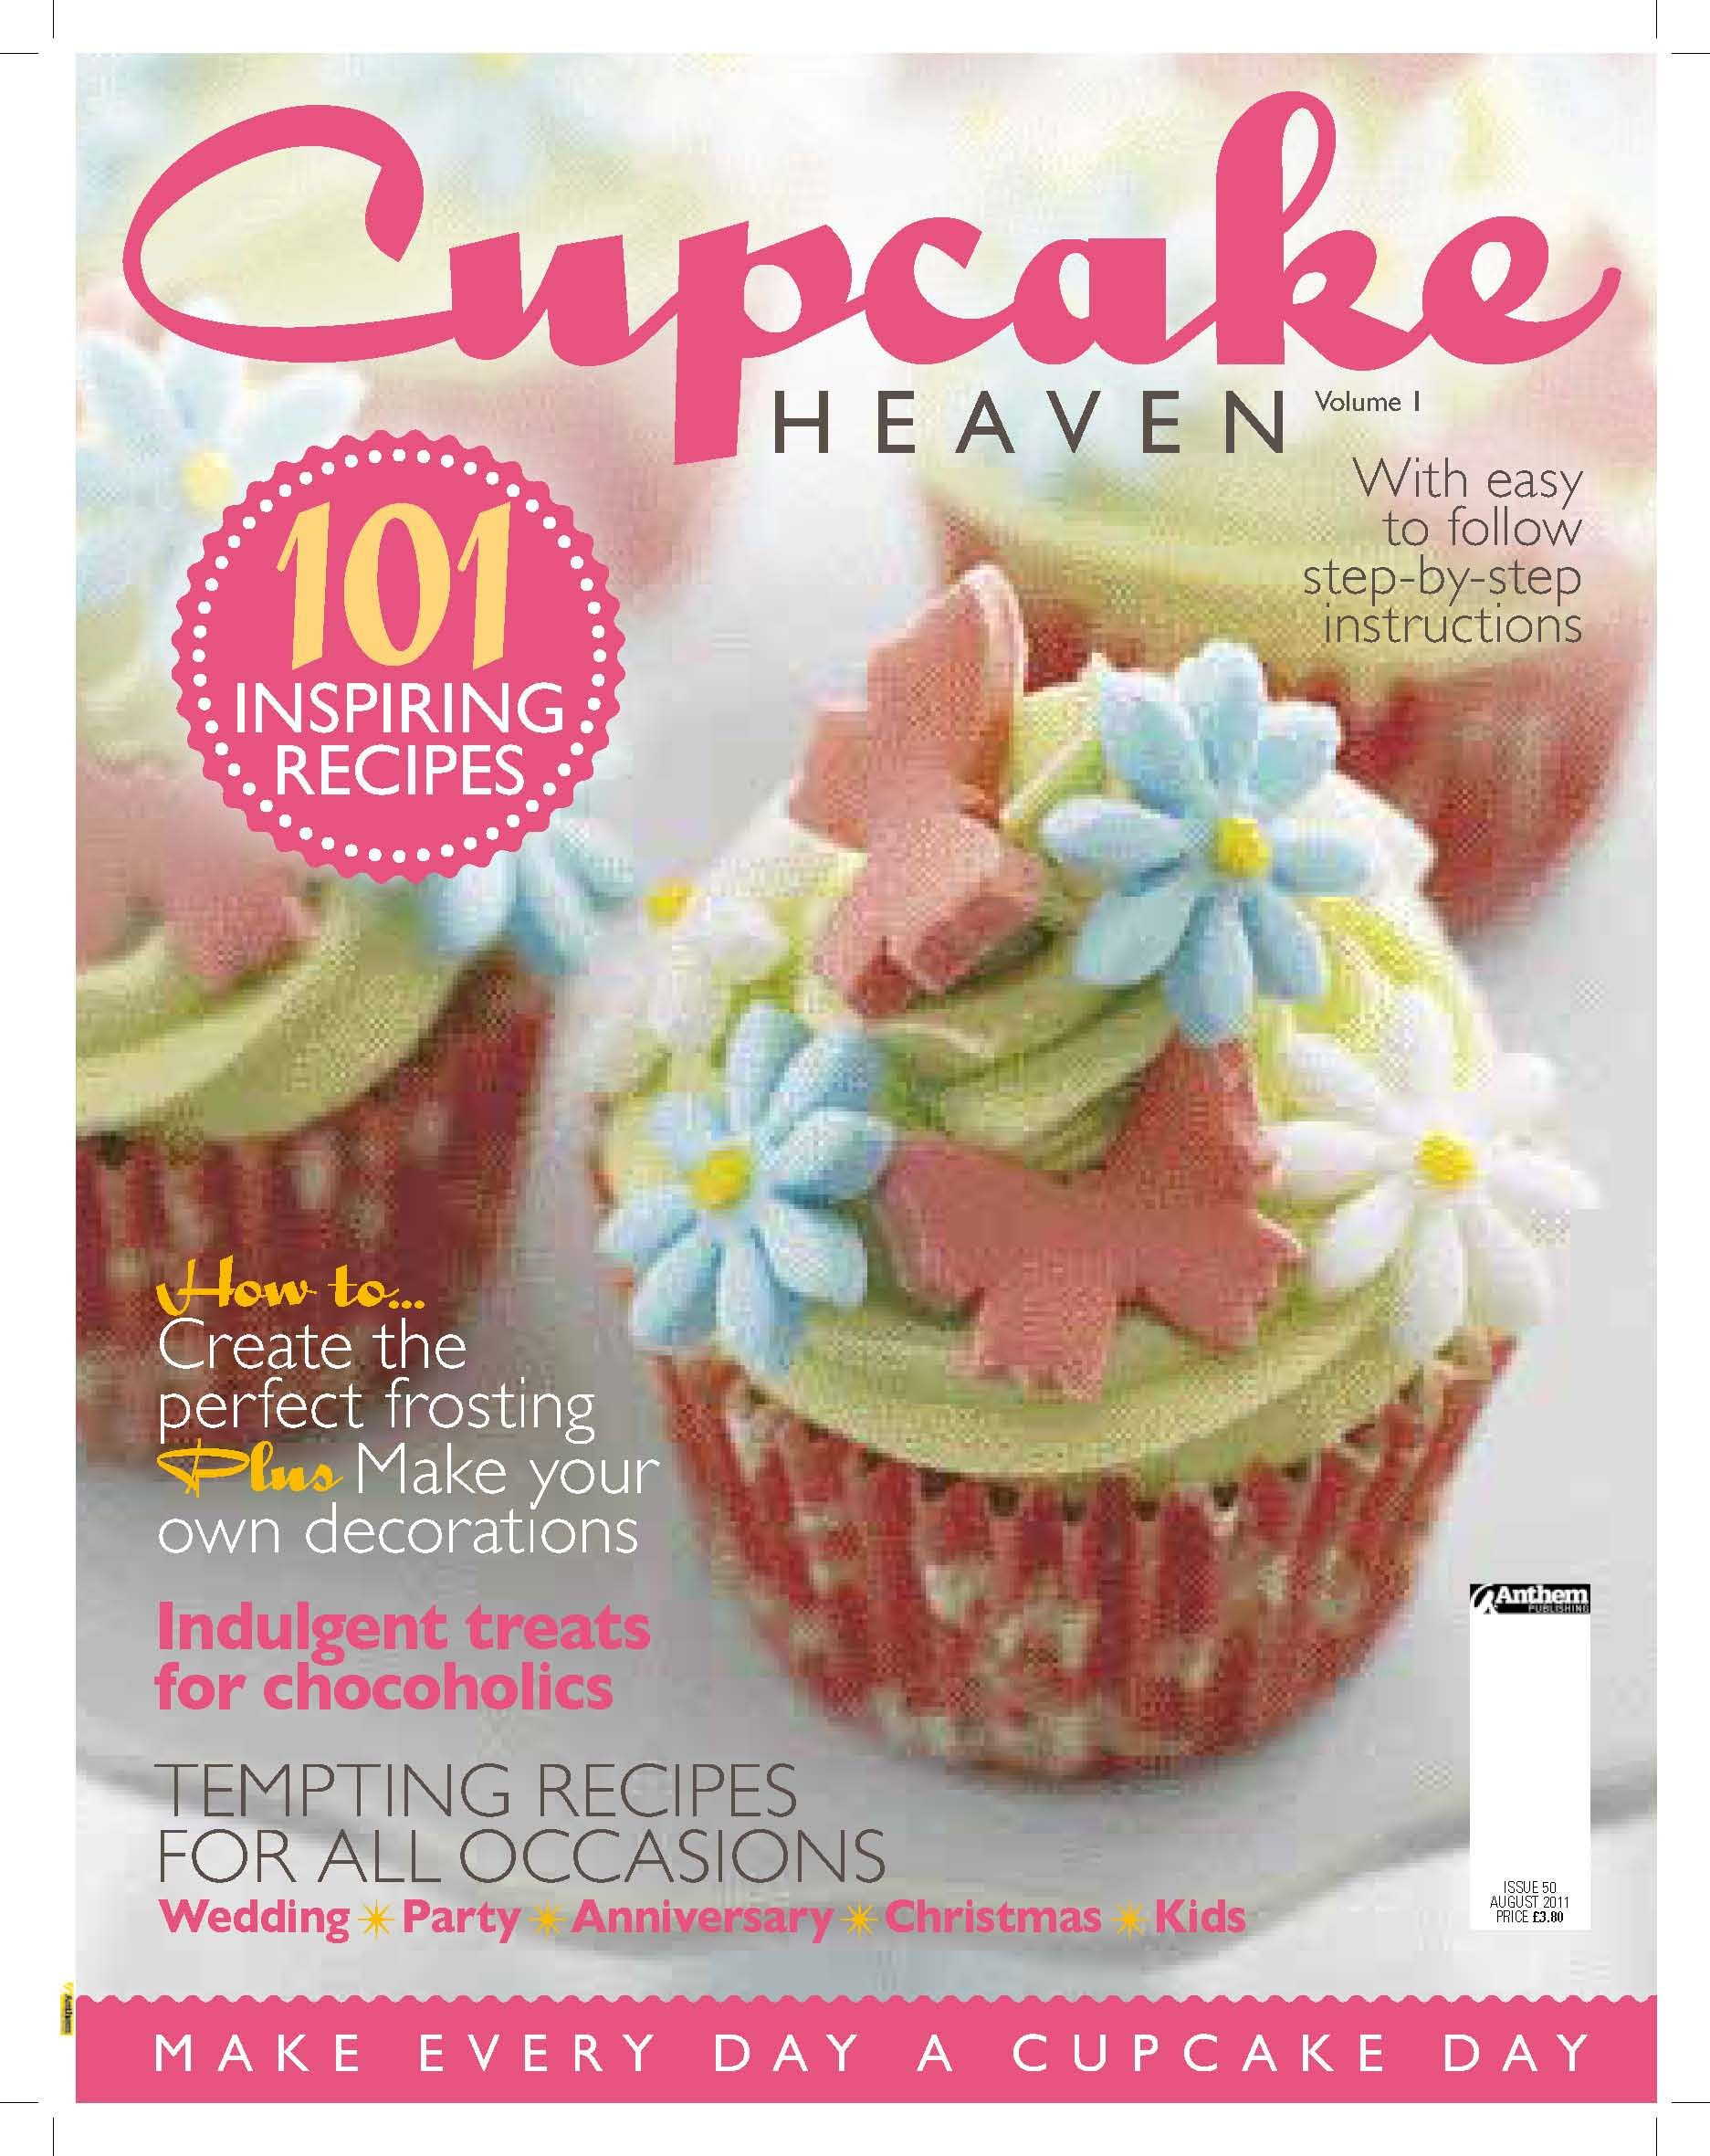 Subscription to Cupcake Heaven Magazine Cupcake day